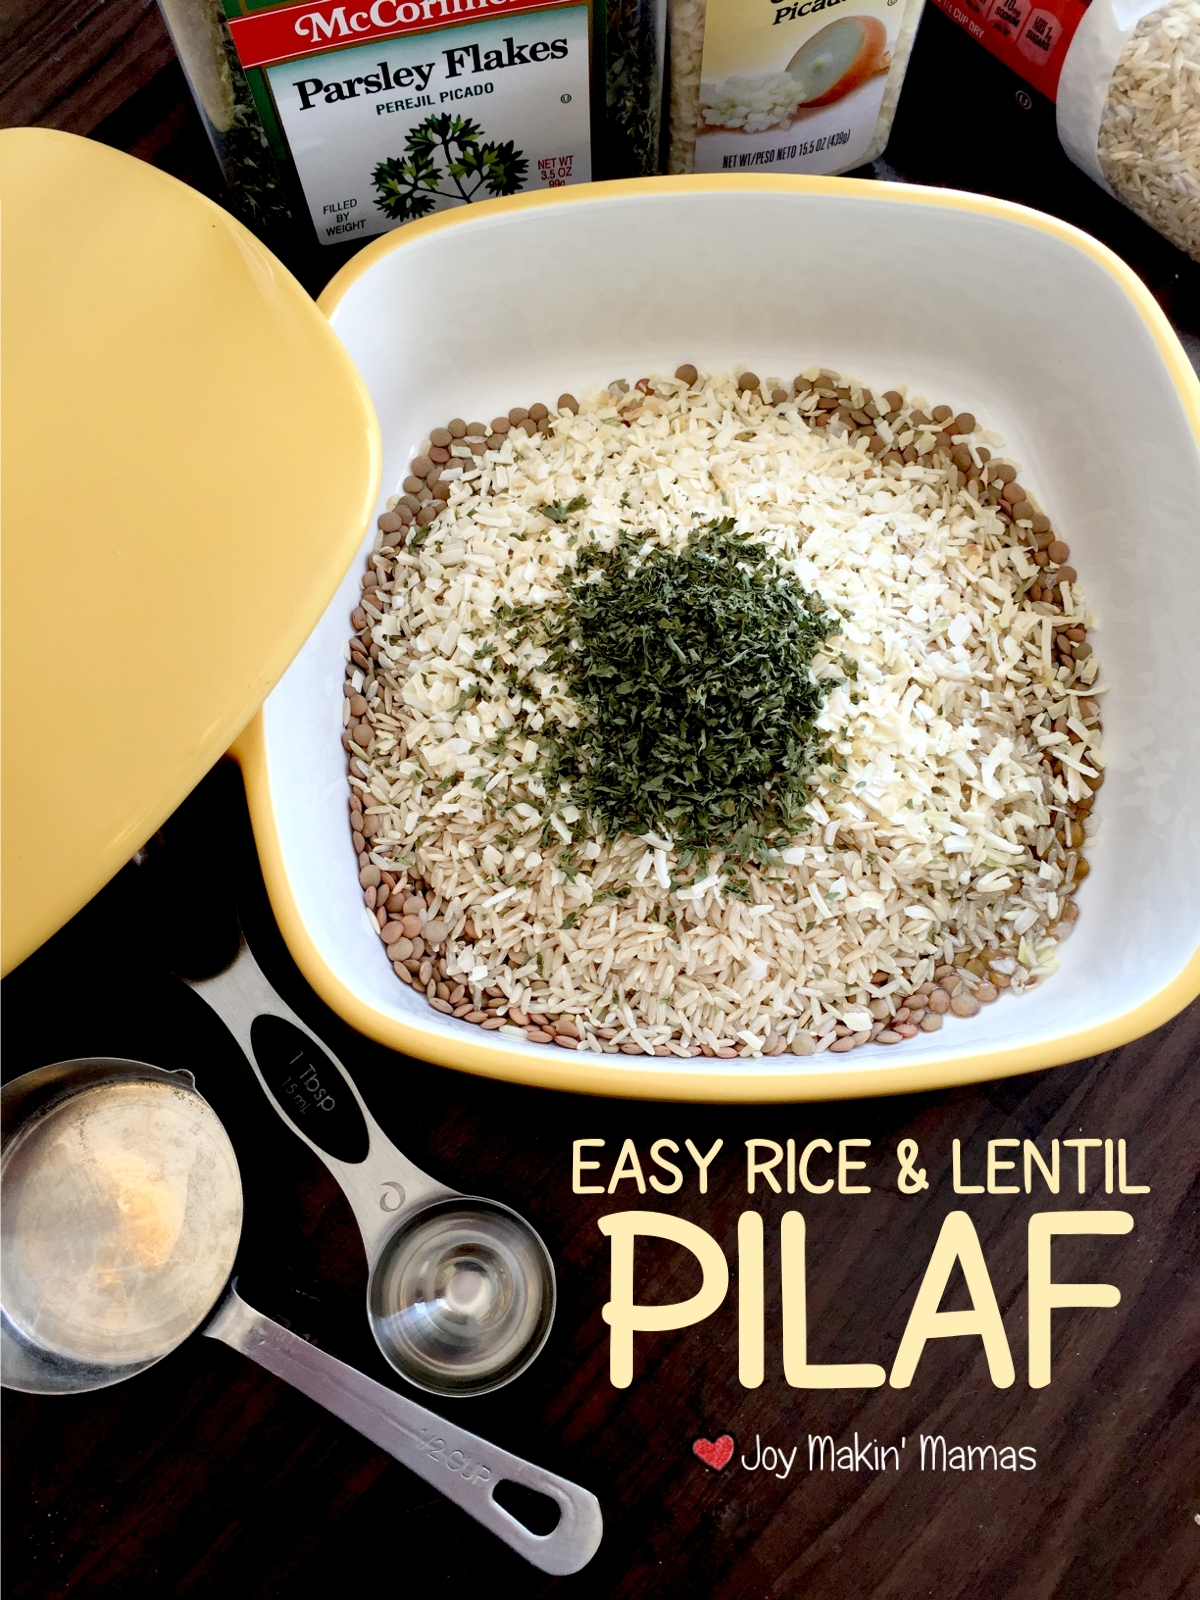 Easy rice and lentil pilaf recipe slow cooker microwave joy makin' mamas